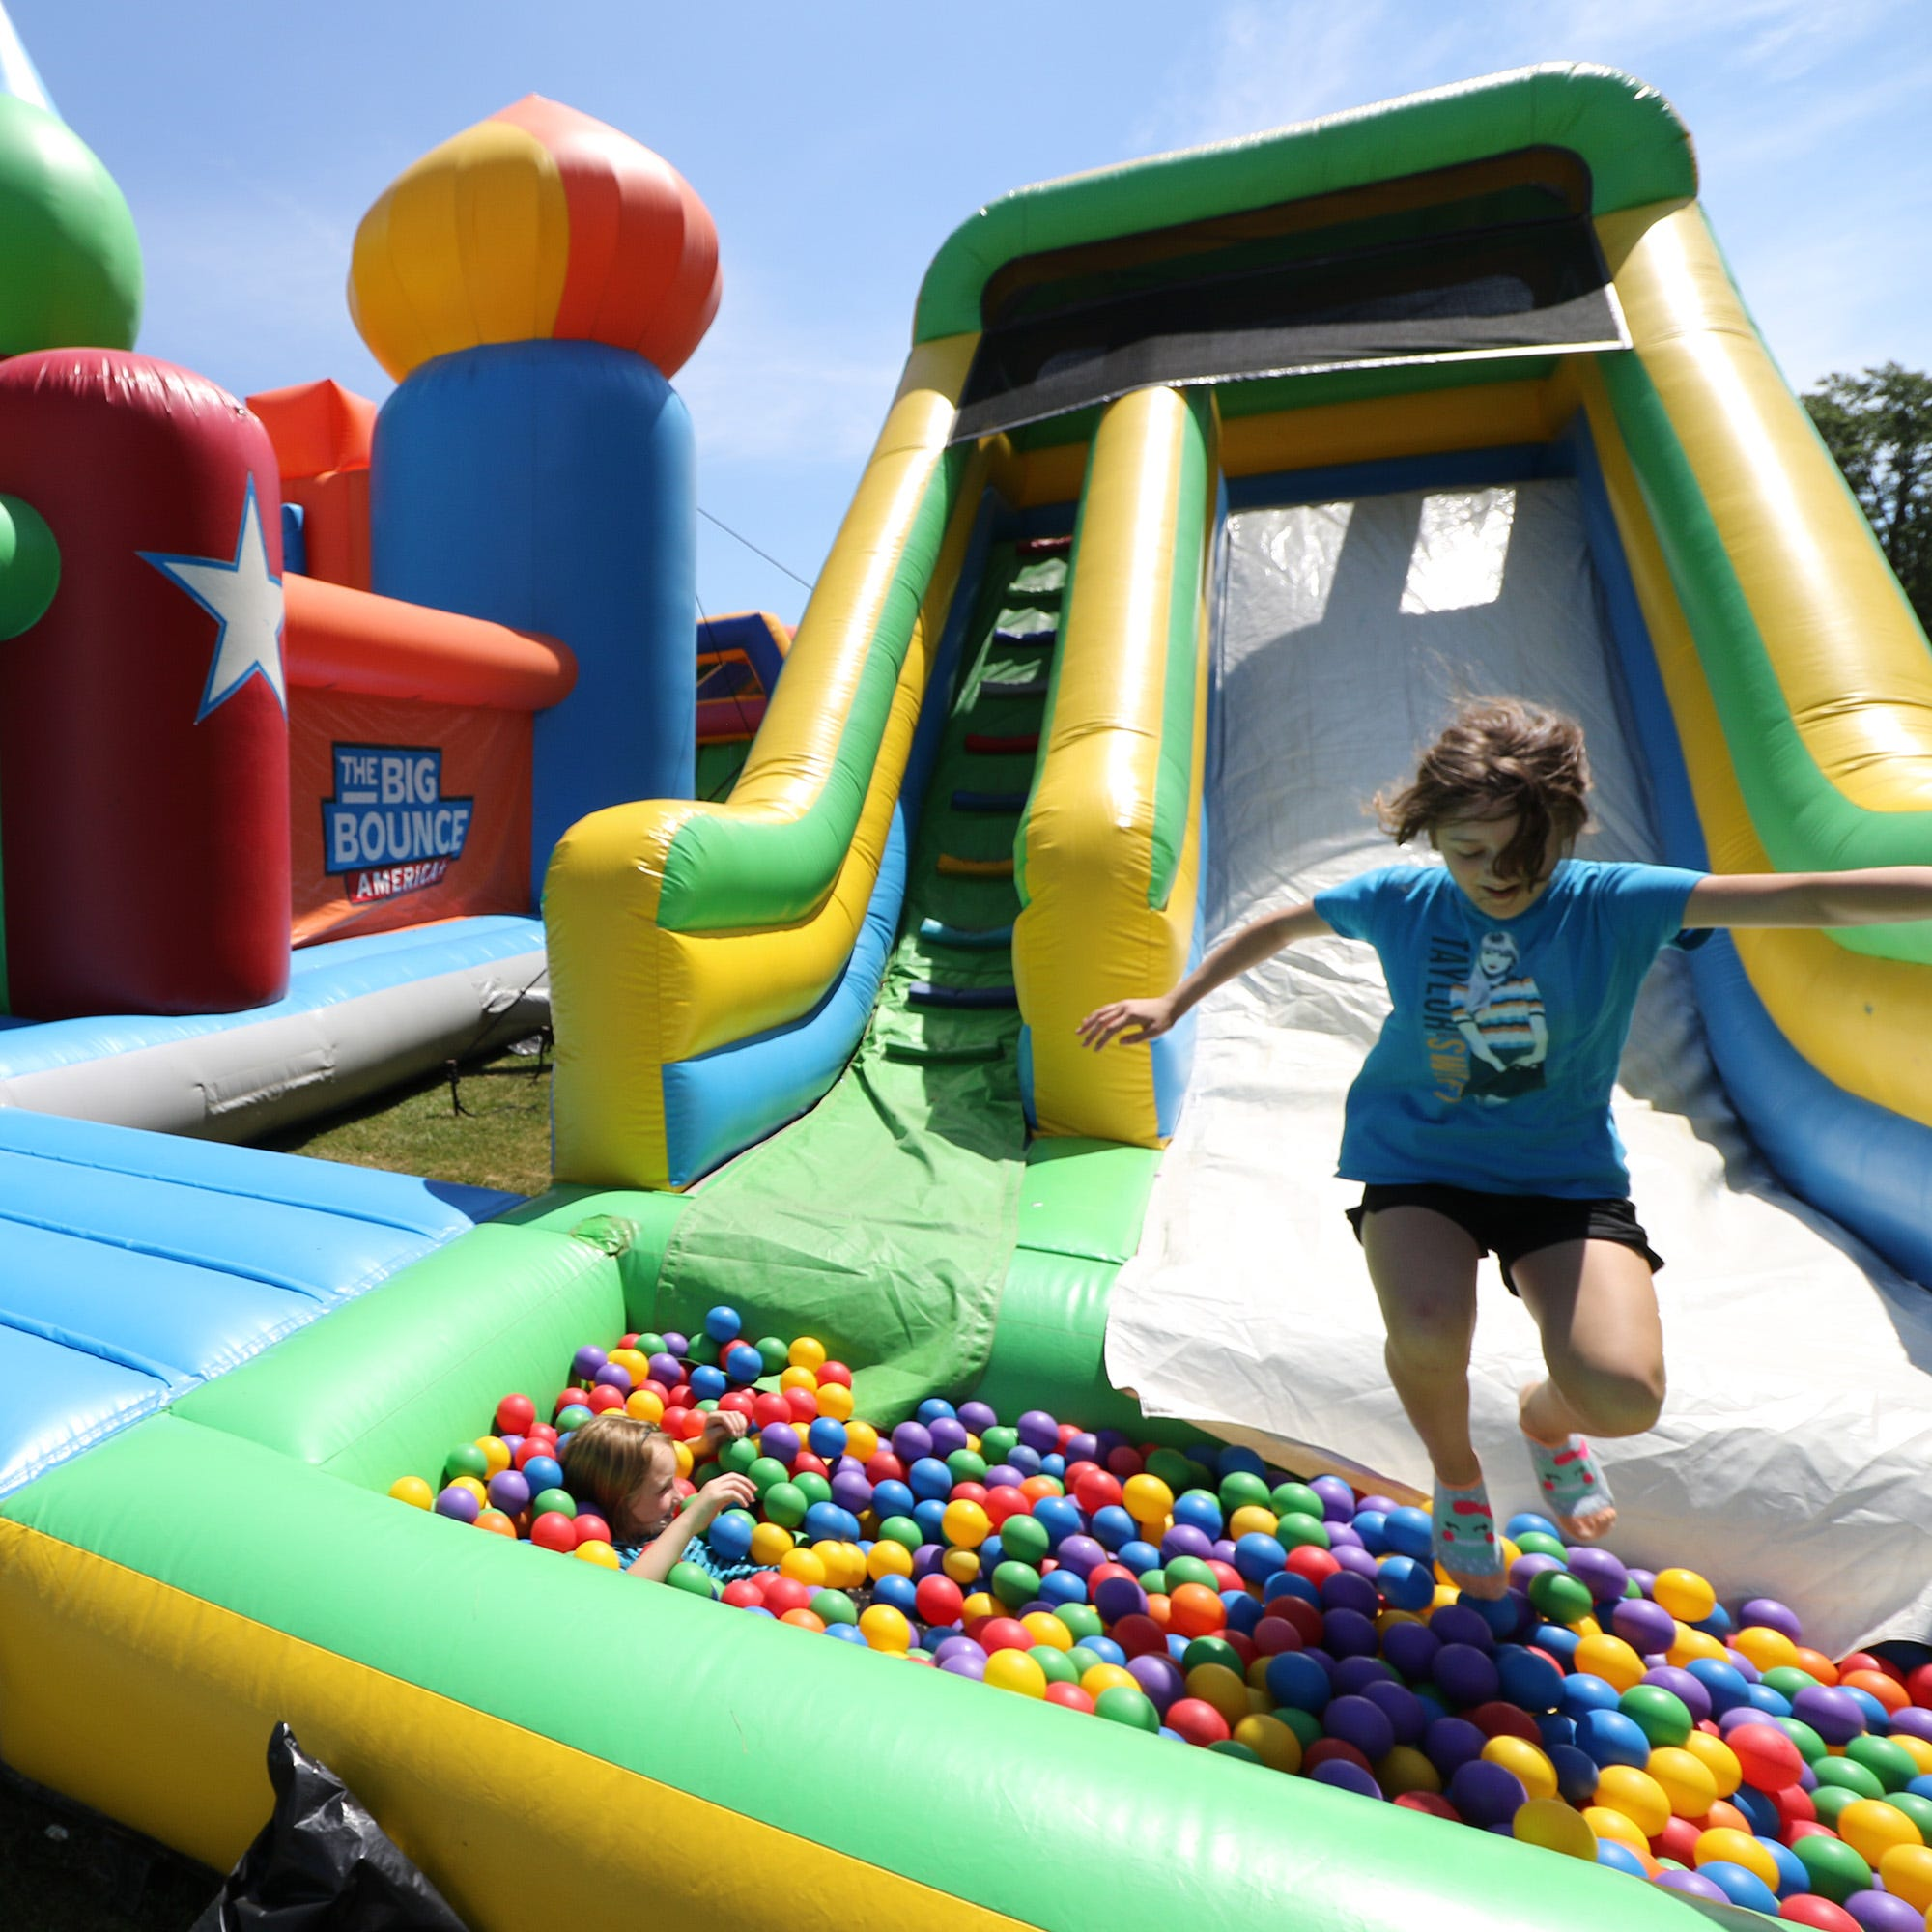 Here's what you can do at the world's biggest bounce house at Greenfield Park this weekend